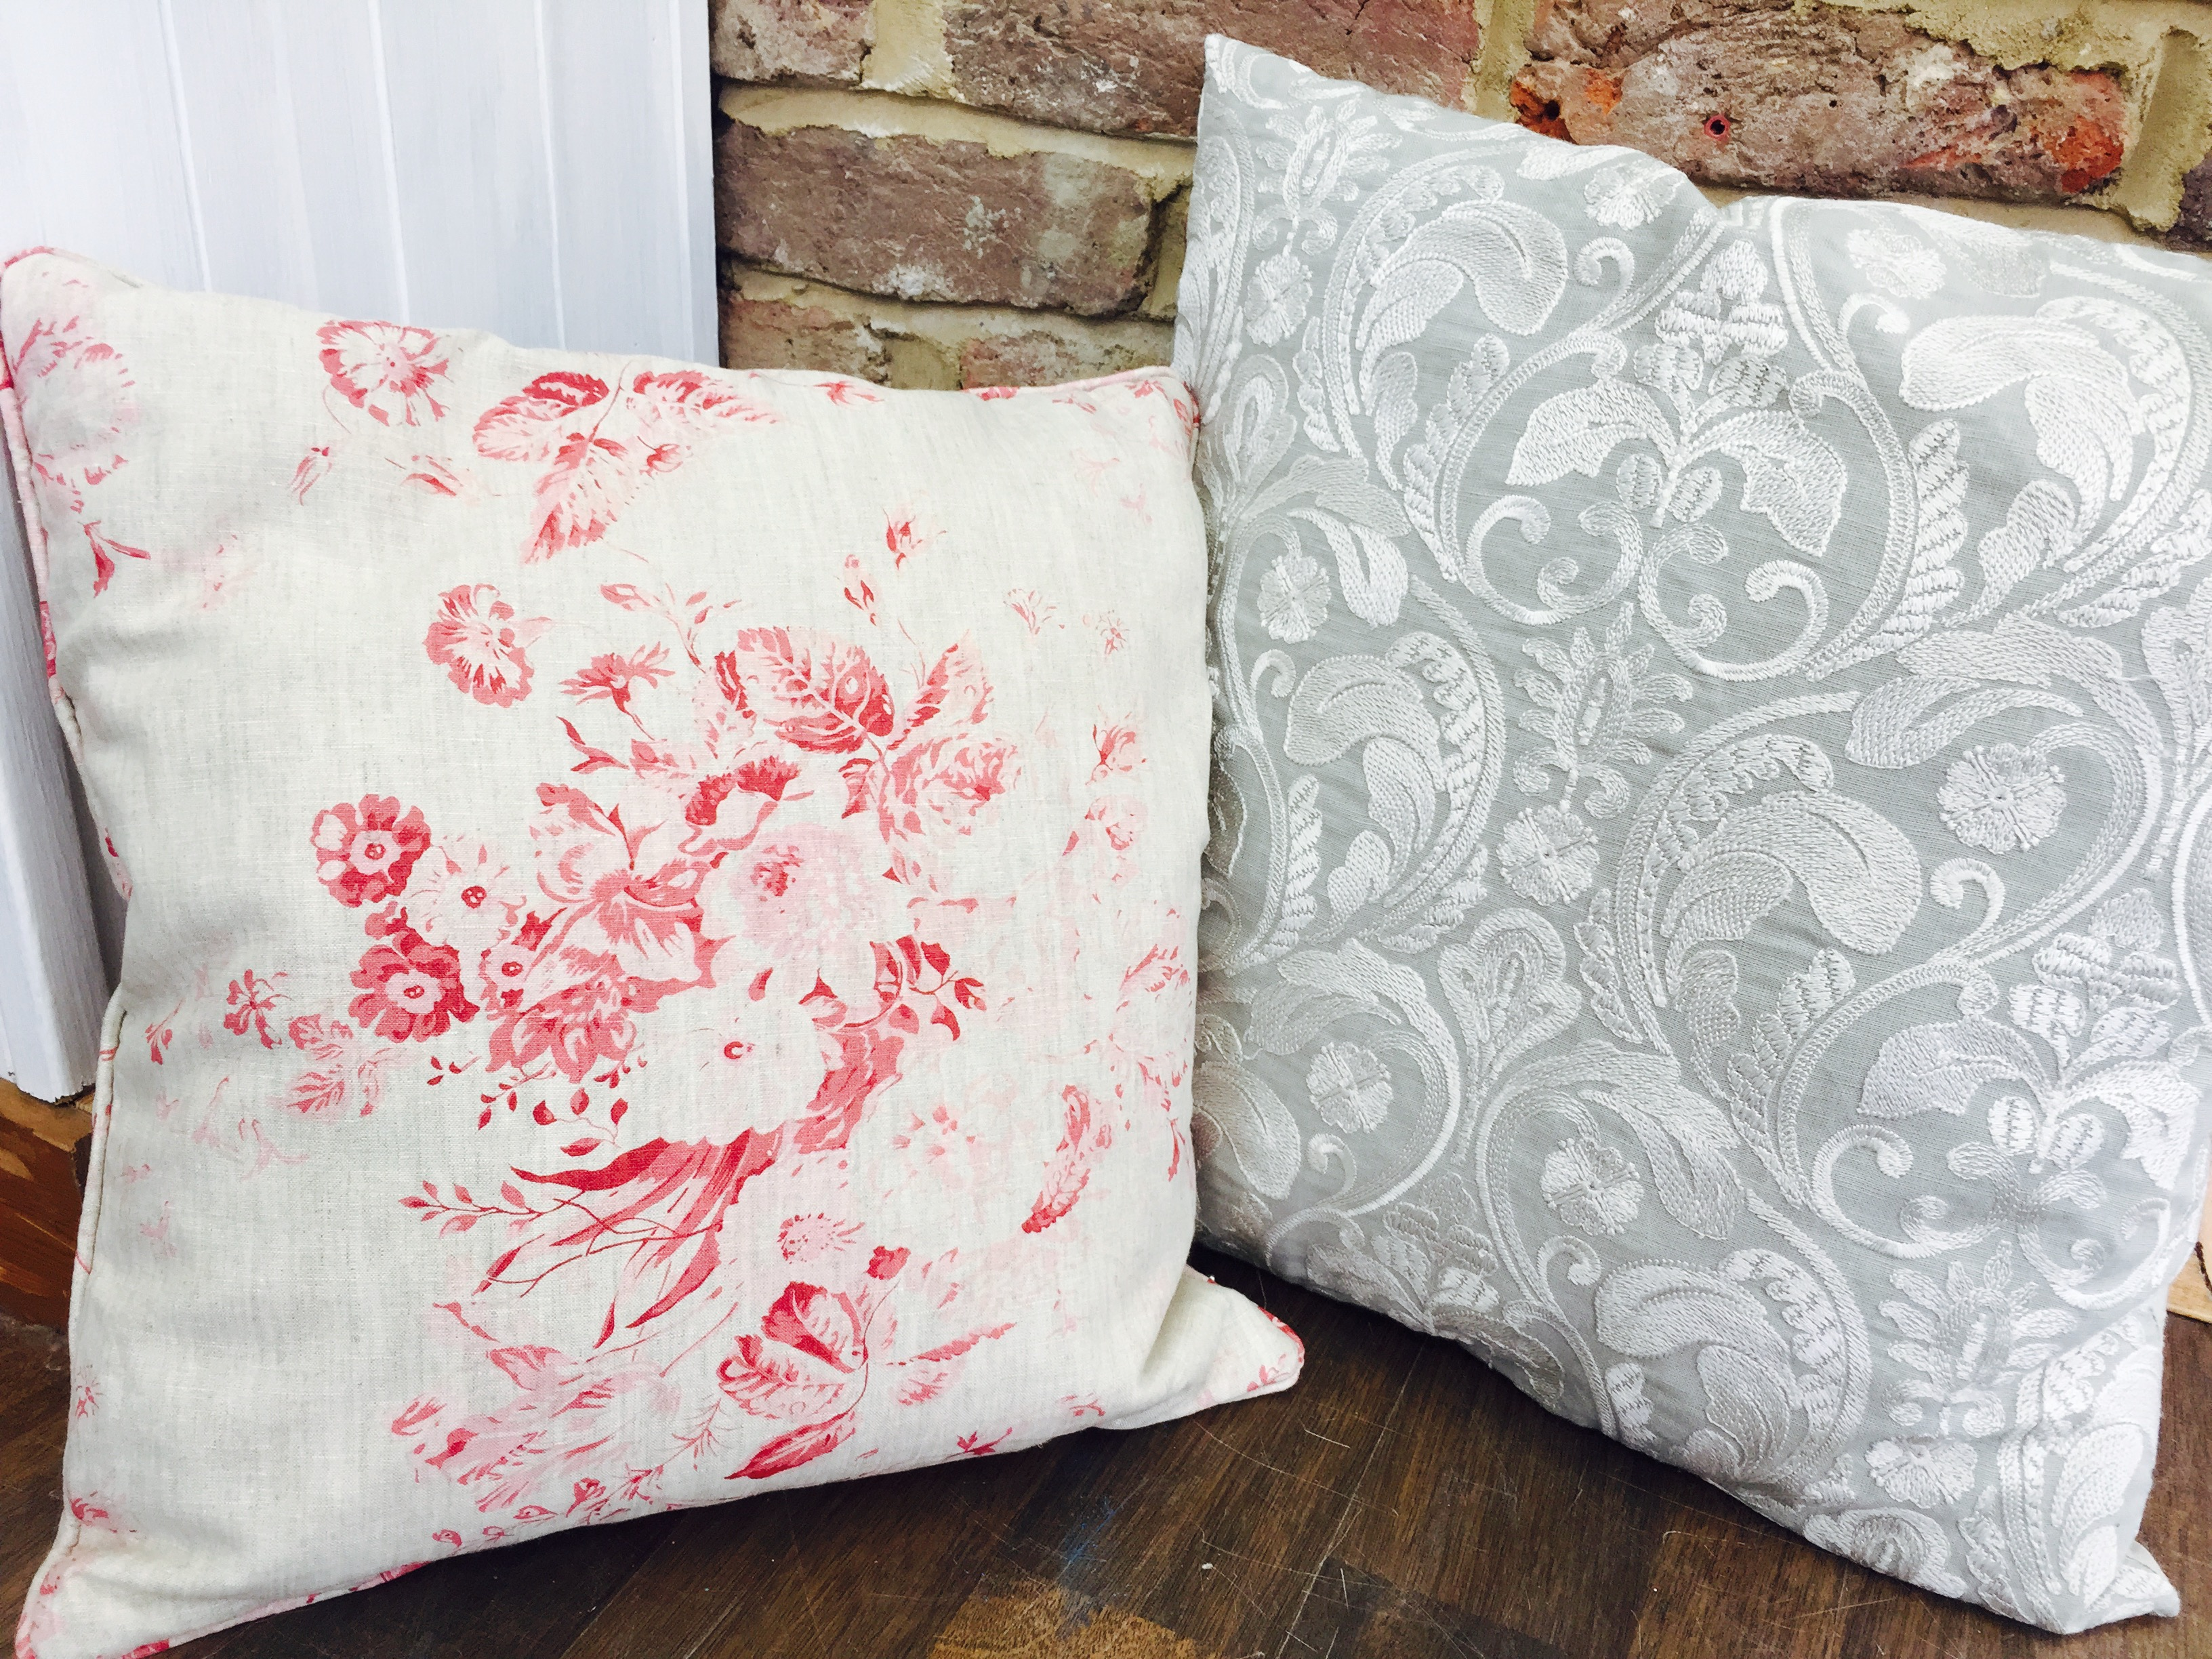 Cushions by Tailor-Made.